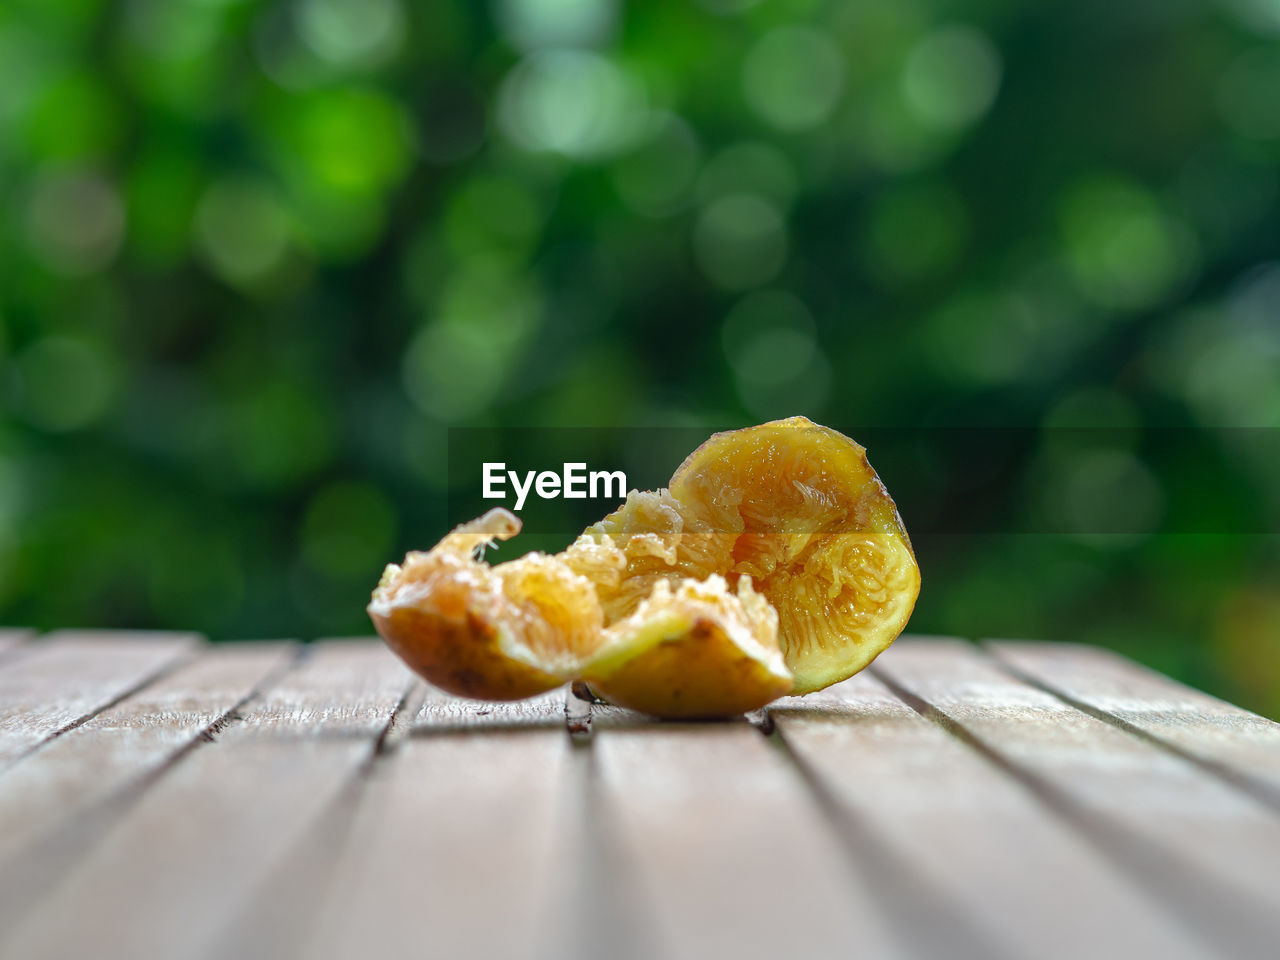 food, food and drink, selective focus, wood - material, close-up, table, freshness, healthy eating, day, no people, fruit, wellbeing, yellow, orange color, outdoors, nature, still life, sunlight, orange, ready-to-eat, surface level, temptation, snack